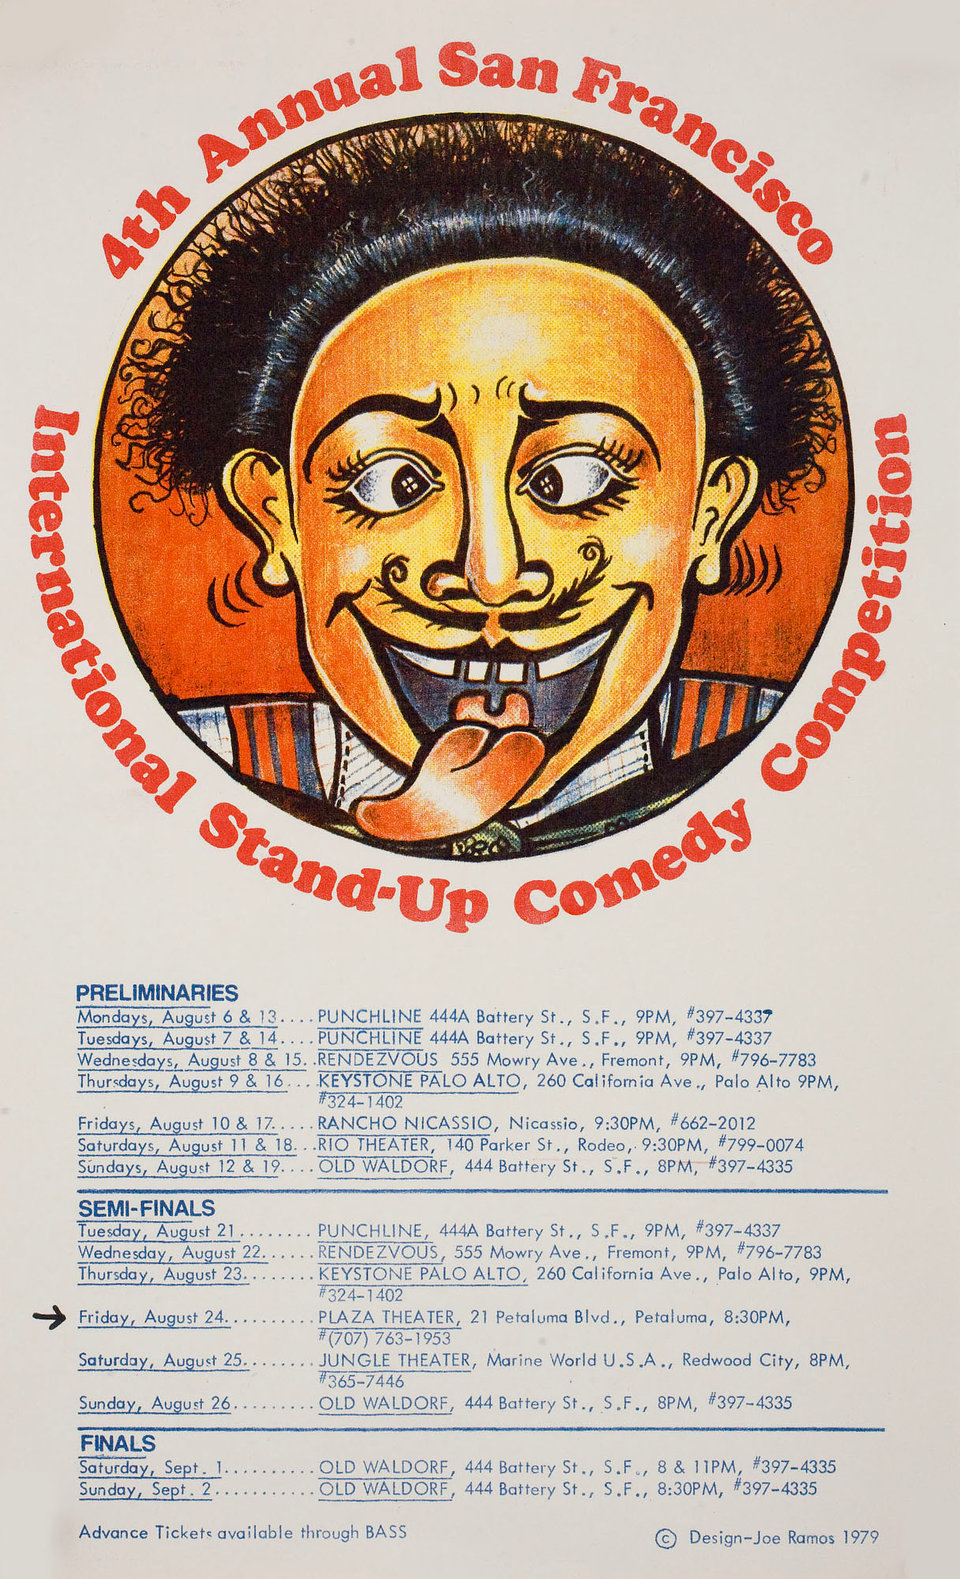 4th Annual San Francisco International Stand-up Comedy Competition 1979 U.S. Mini Poster